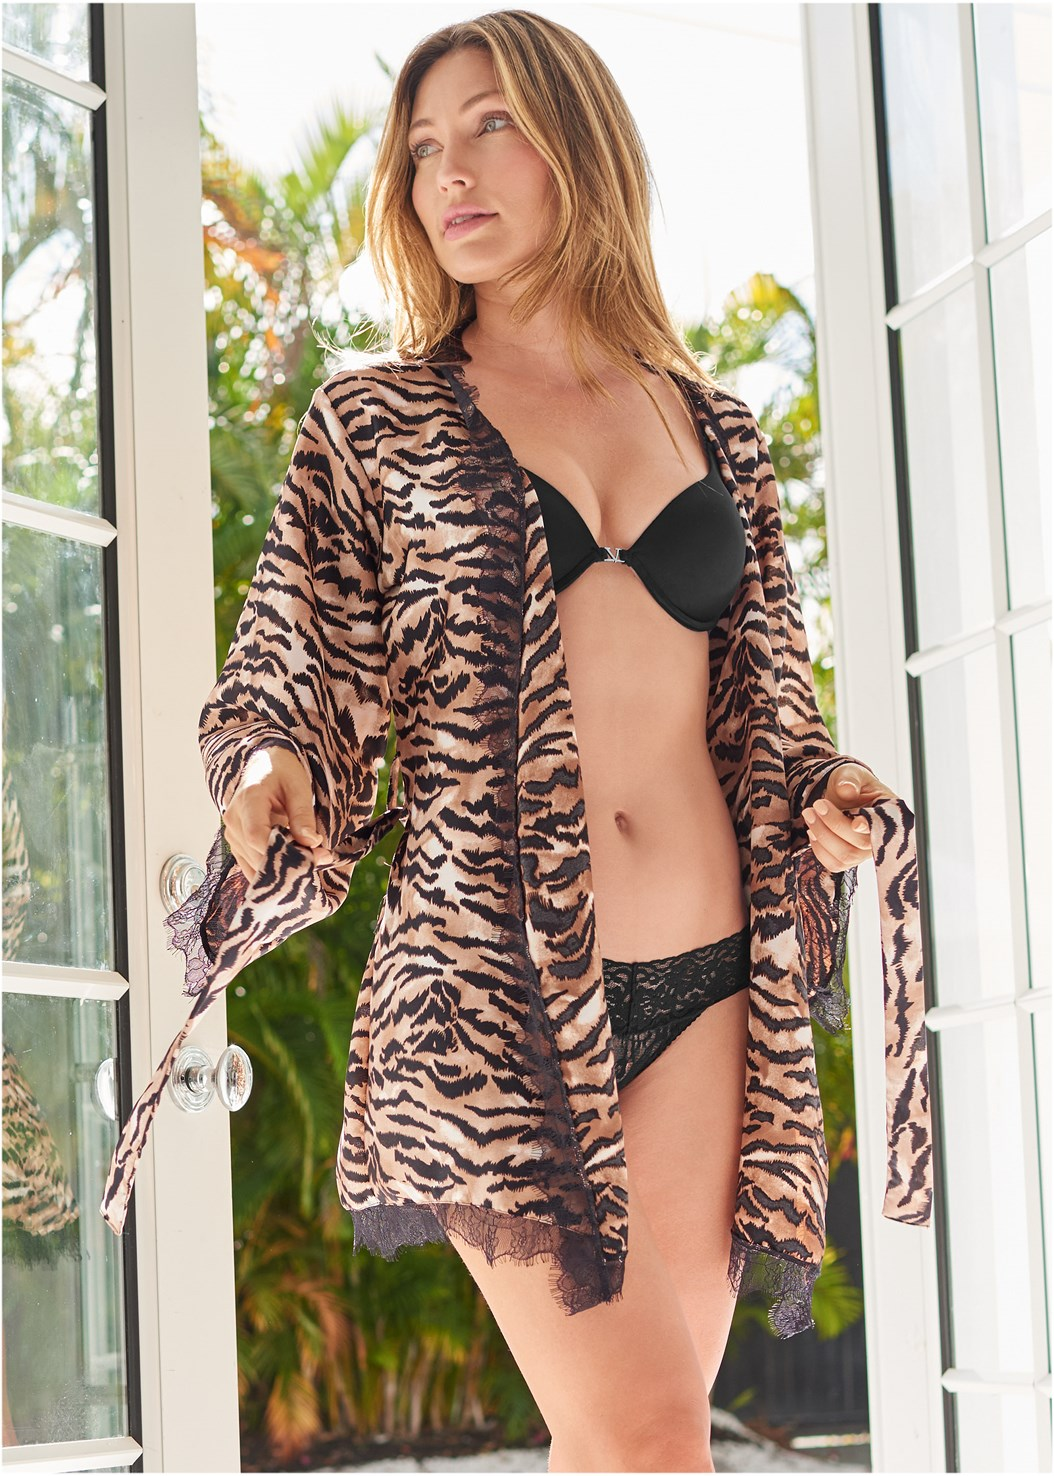 Tiger Print Robe With Lace,Push Up Bra Buy 2 For $40